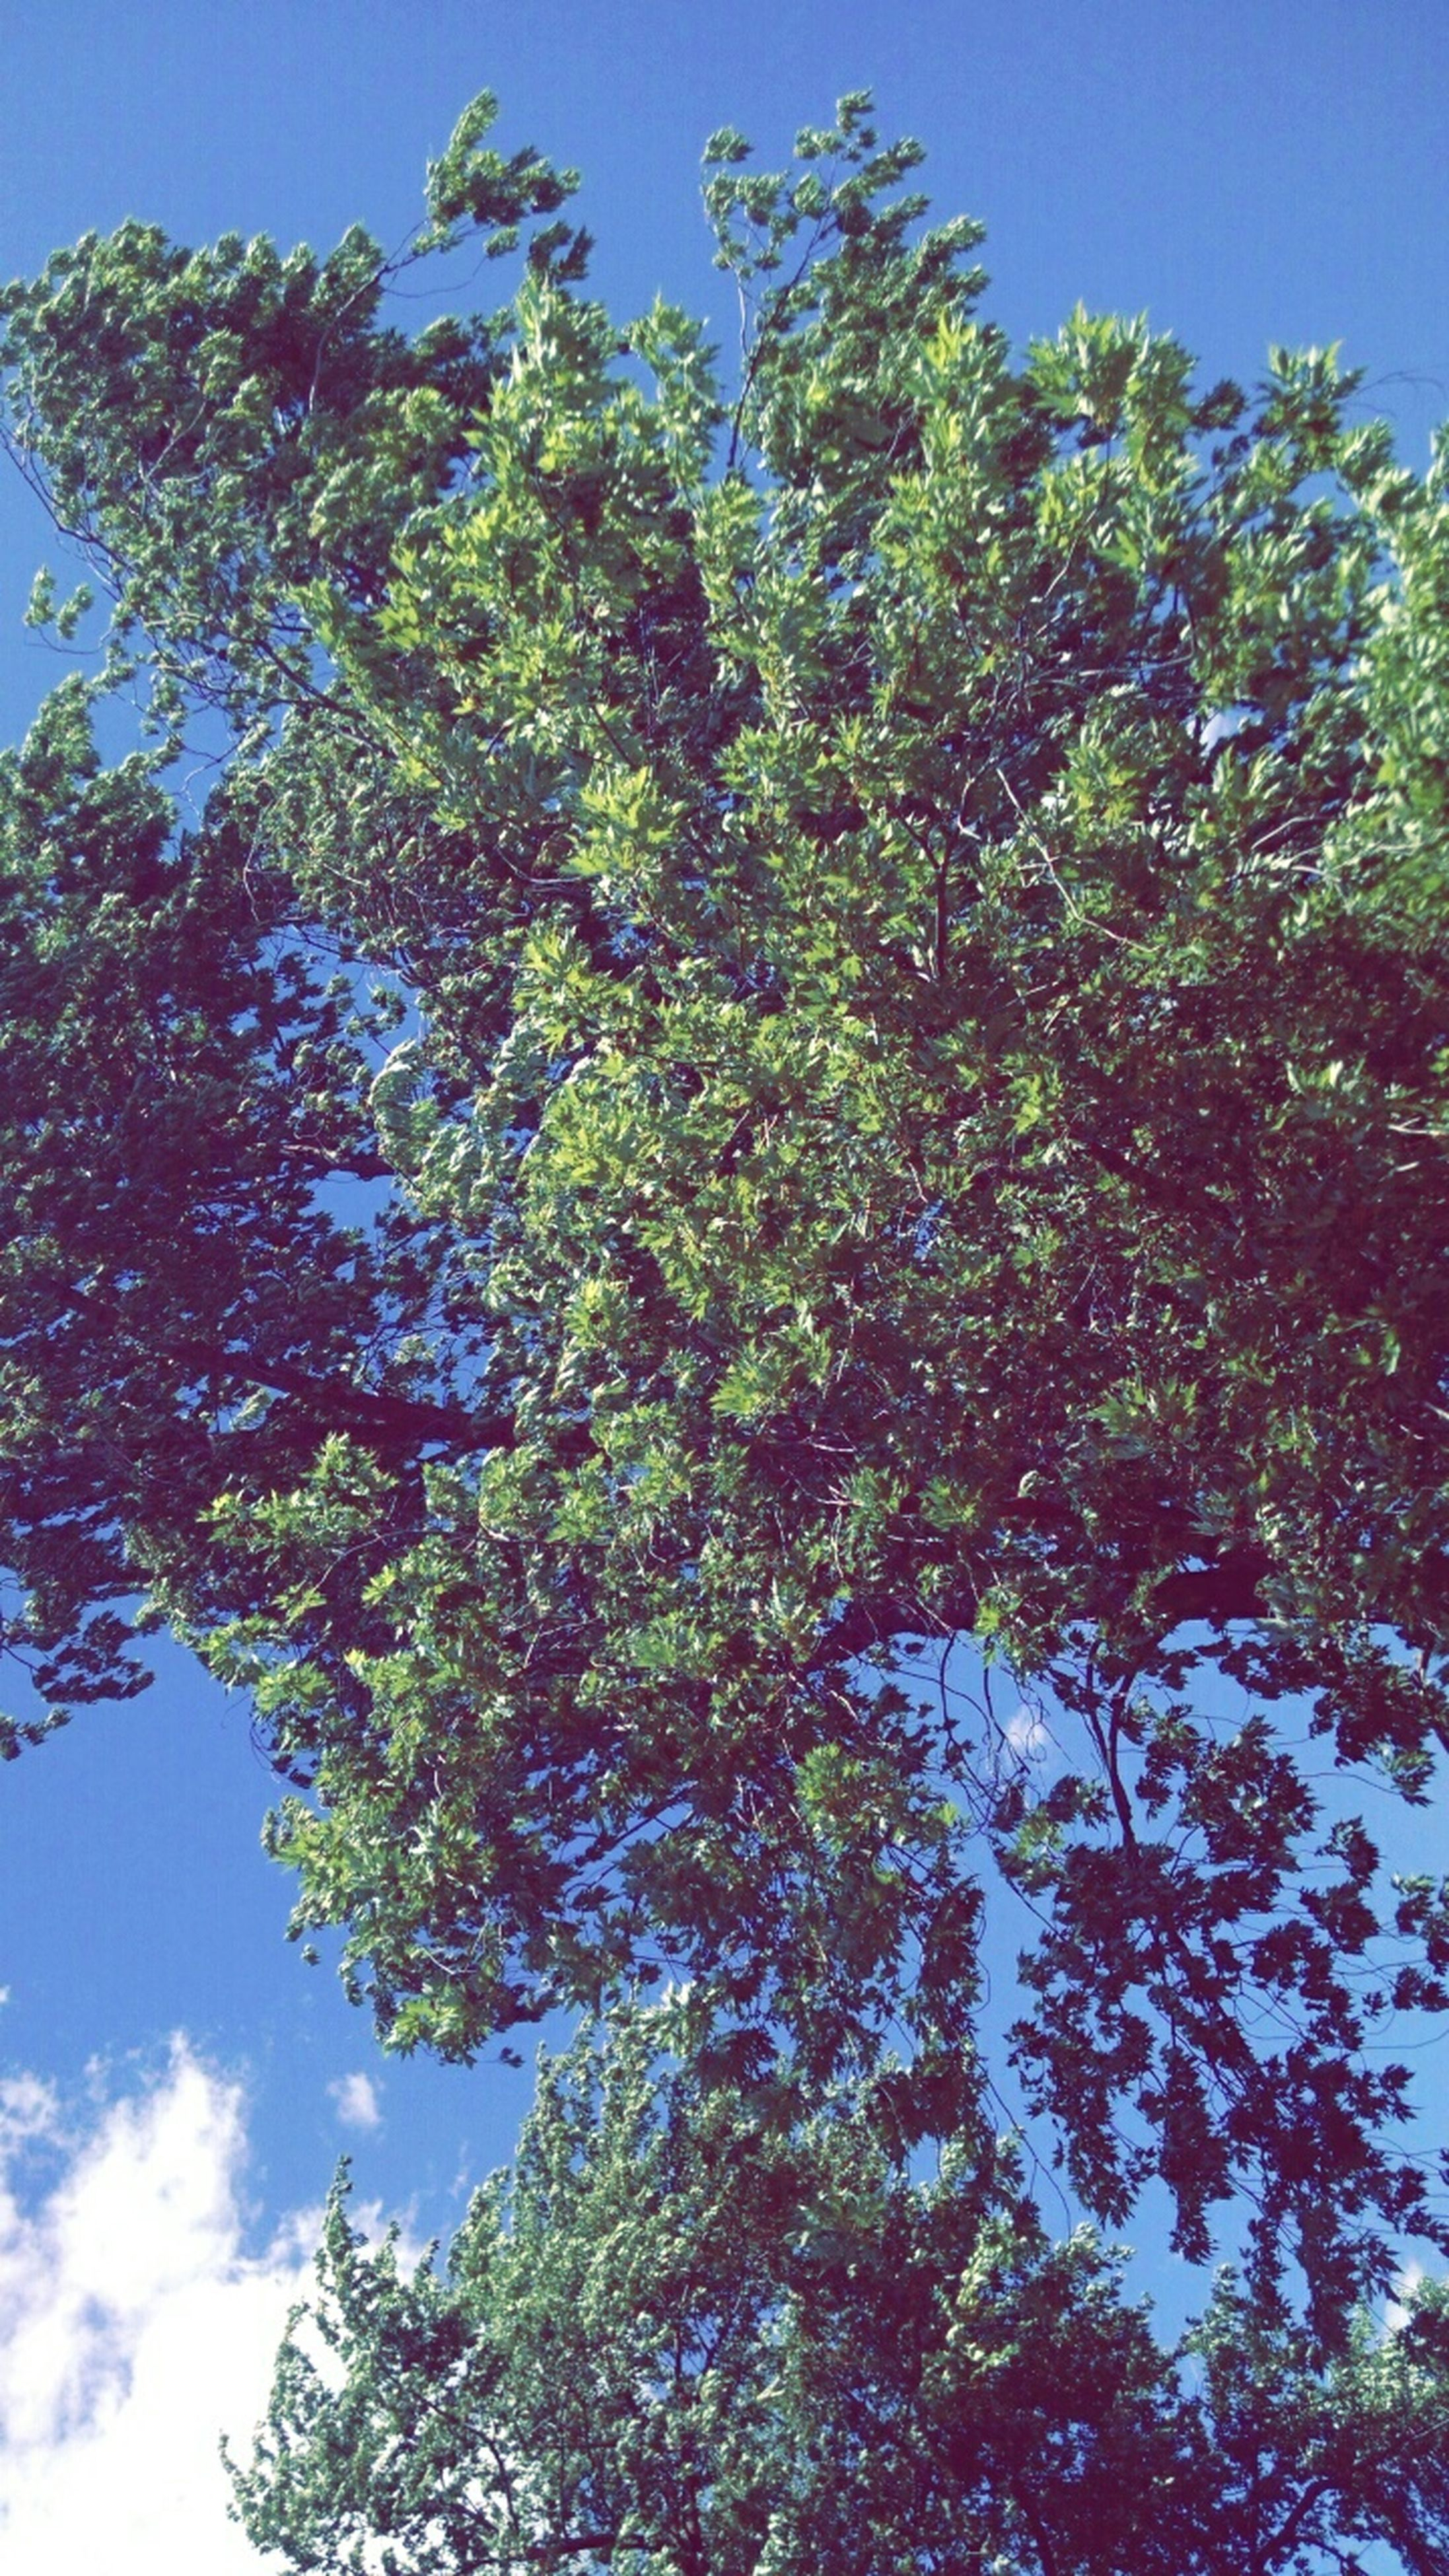 tree, low angle view, growth, tranquility, branch, blue, beauty in nature, nature, sky, clear sky, tranquil scene, scenics, sunlight, green color, day, no people, outdoors, idyllic, forest, lush foliage